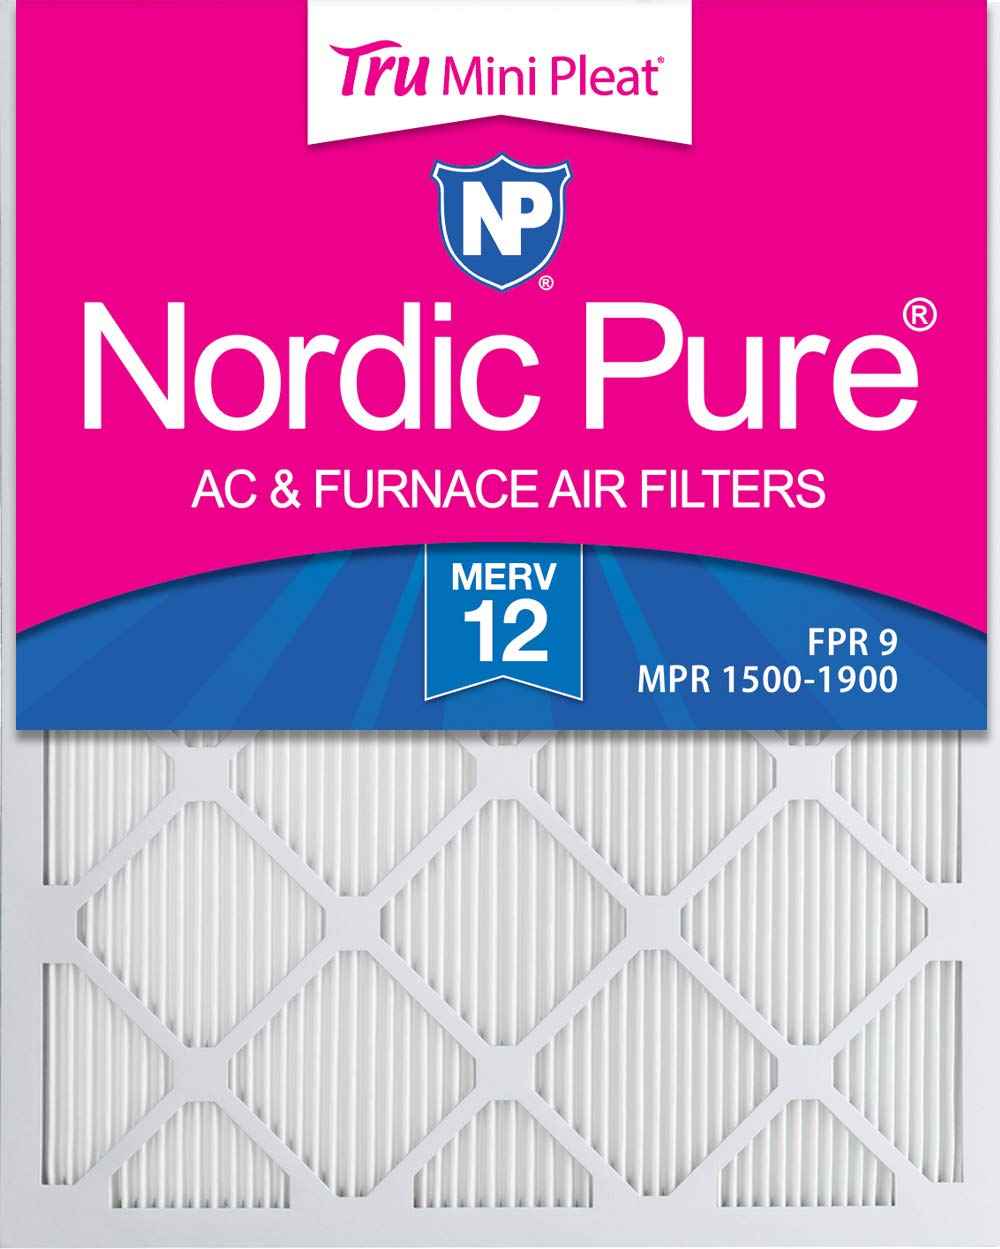 Nordic Pure 14x18x1 MERV 12 Tru Mini Pleat AC Furnace Air Filters 2 Pack